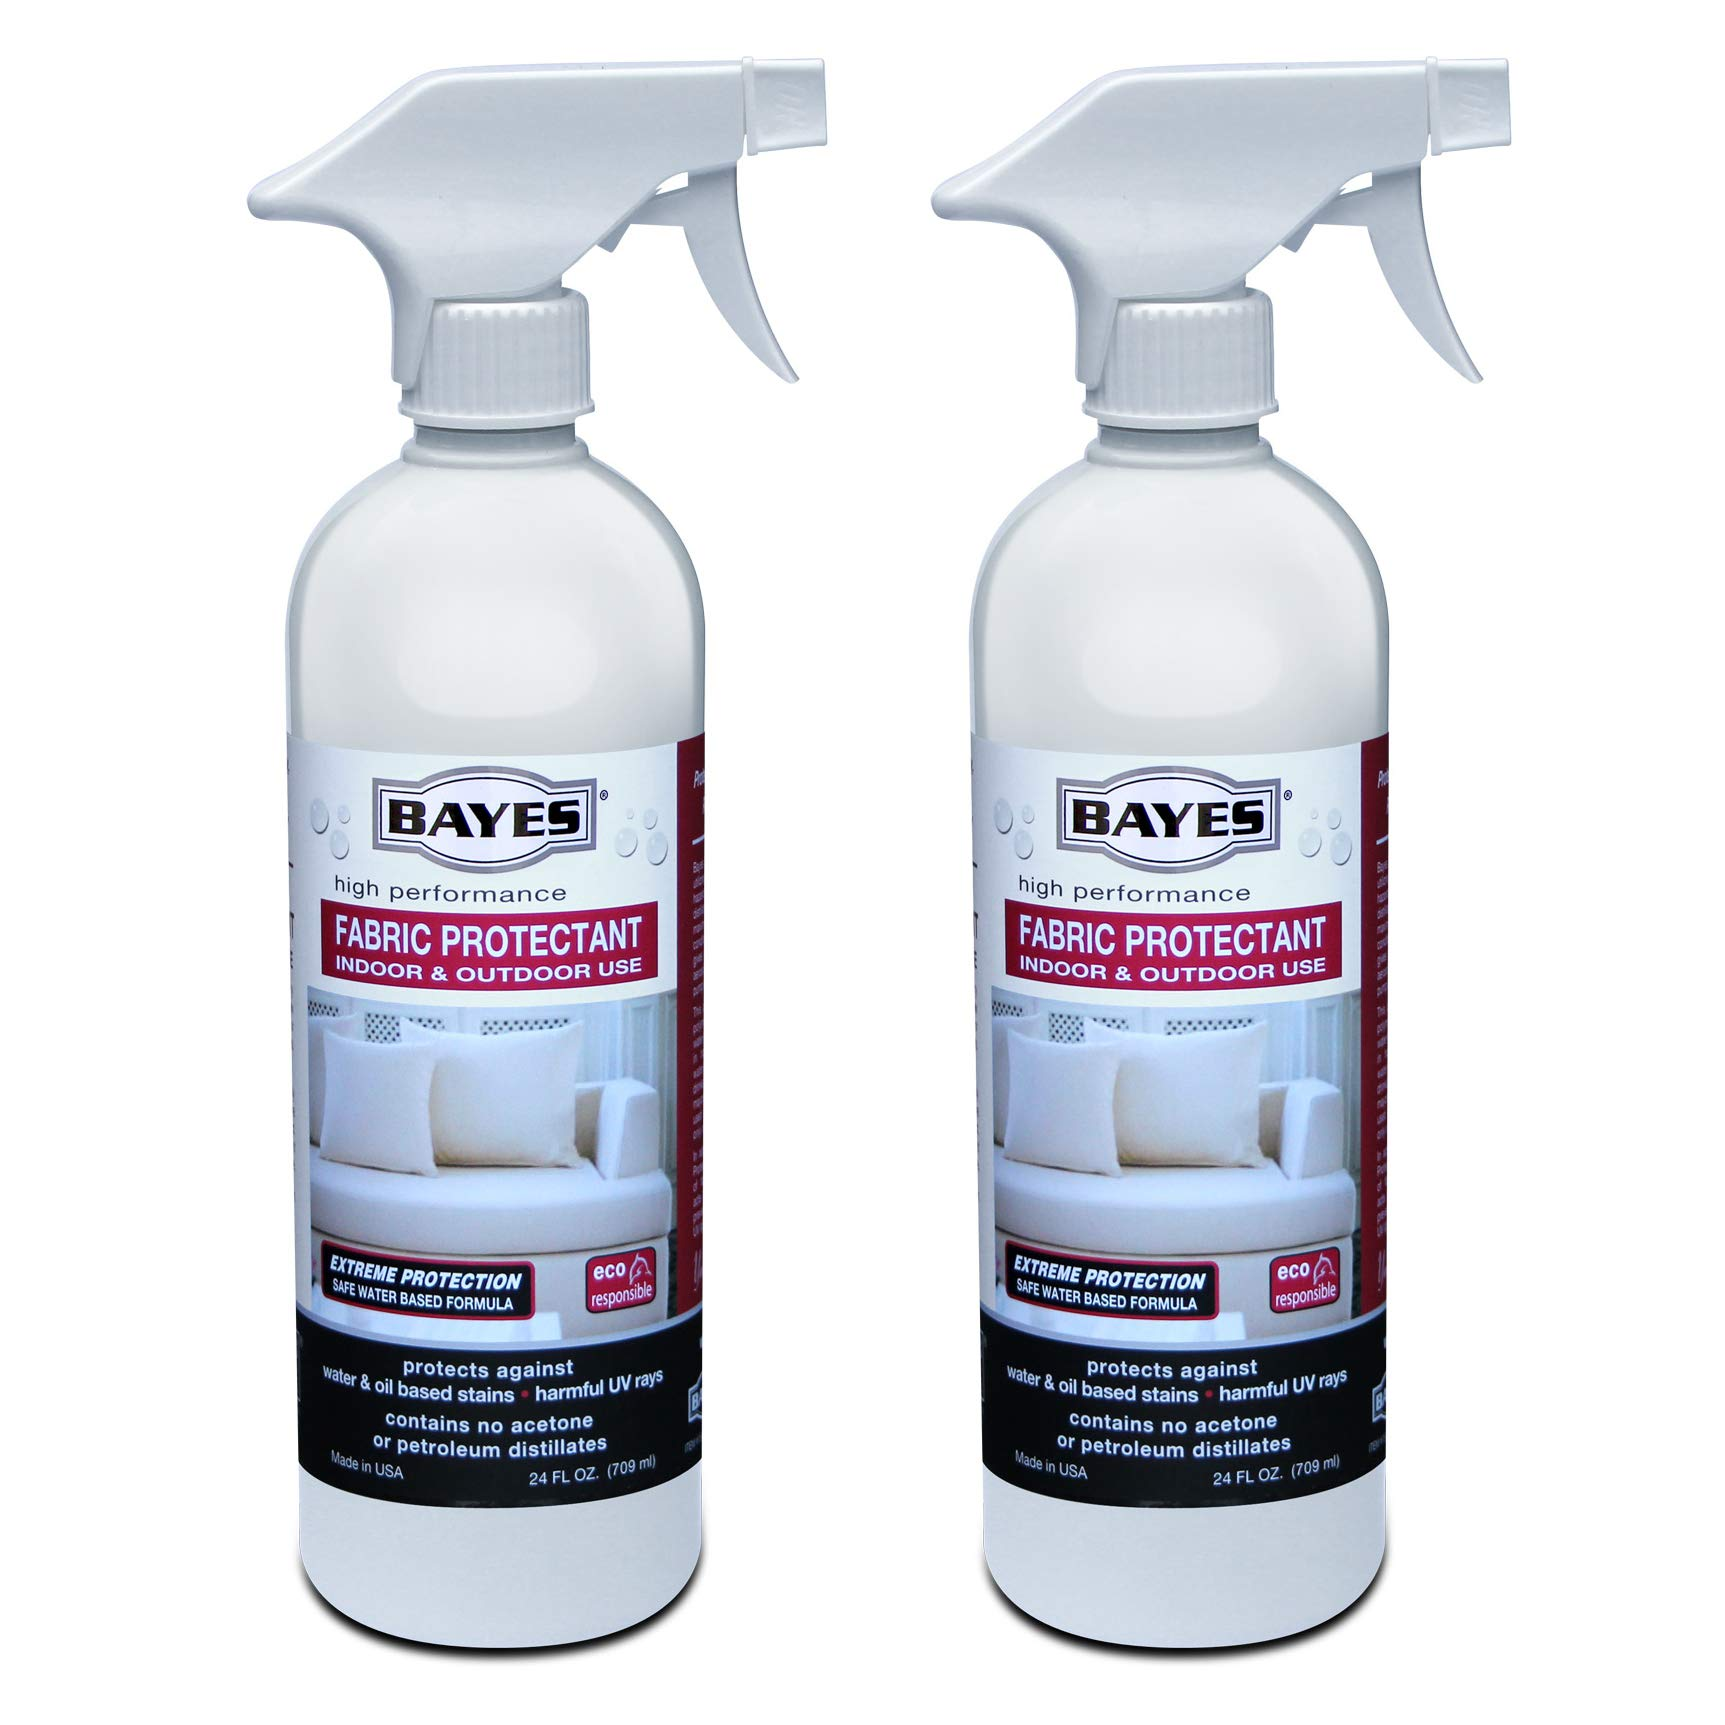 Bayes High-Performance Fabric Protectant Spray for Indoor and Outdoor Use - Water, Stain, and UV Rays Repellent - 24 oz, 2 Pack by Bayes